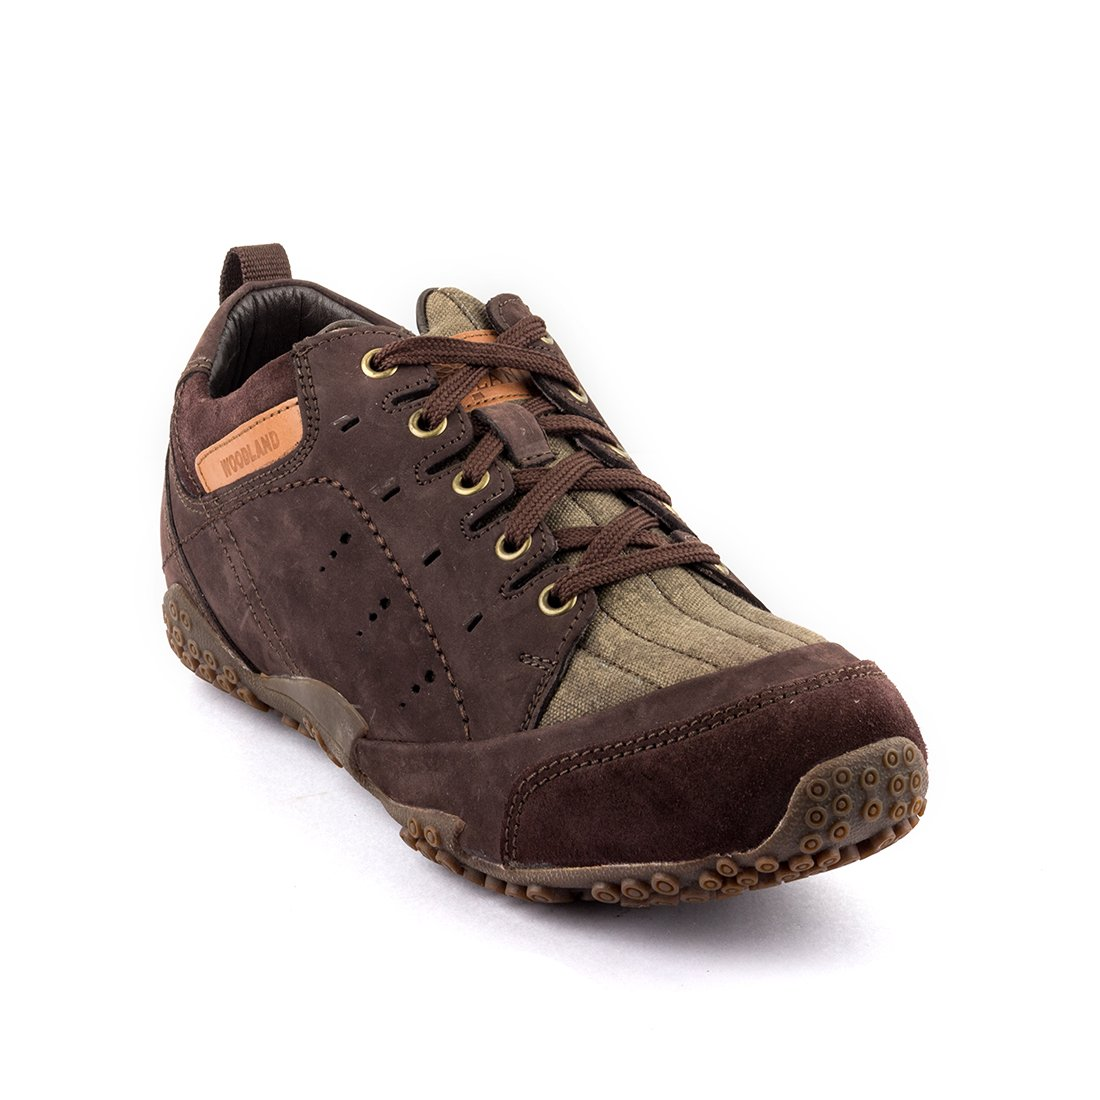 Casual Brown Sneaker Shoes at Amazon